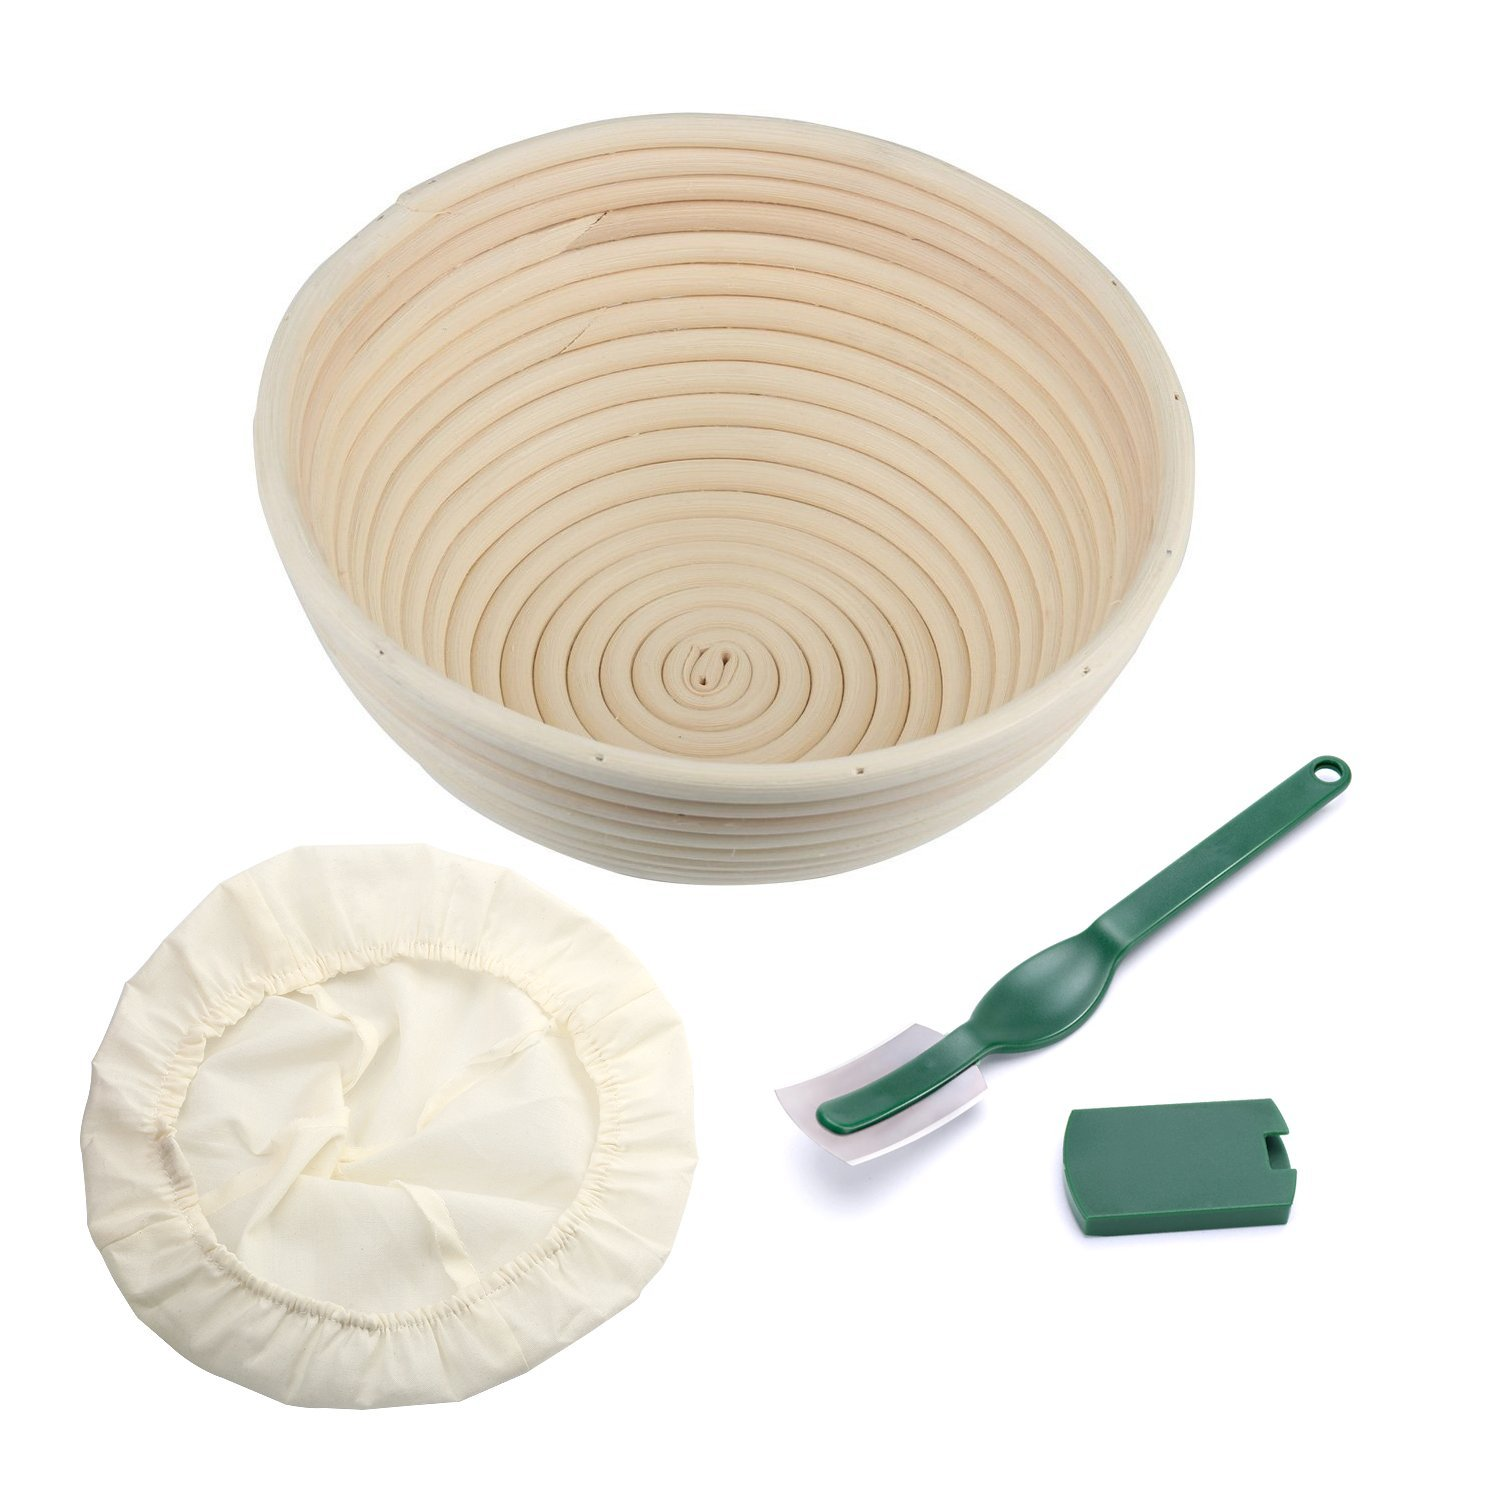 Round Bread Proofing Basket, OAMCEG Banneton Proofing Basket & Dough Scraper Set,Sourdough Proofing Basket Set with Cloth Liner (8.5 inch)